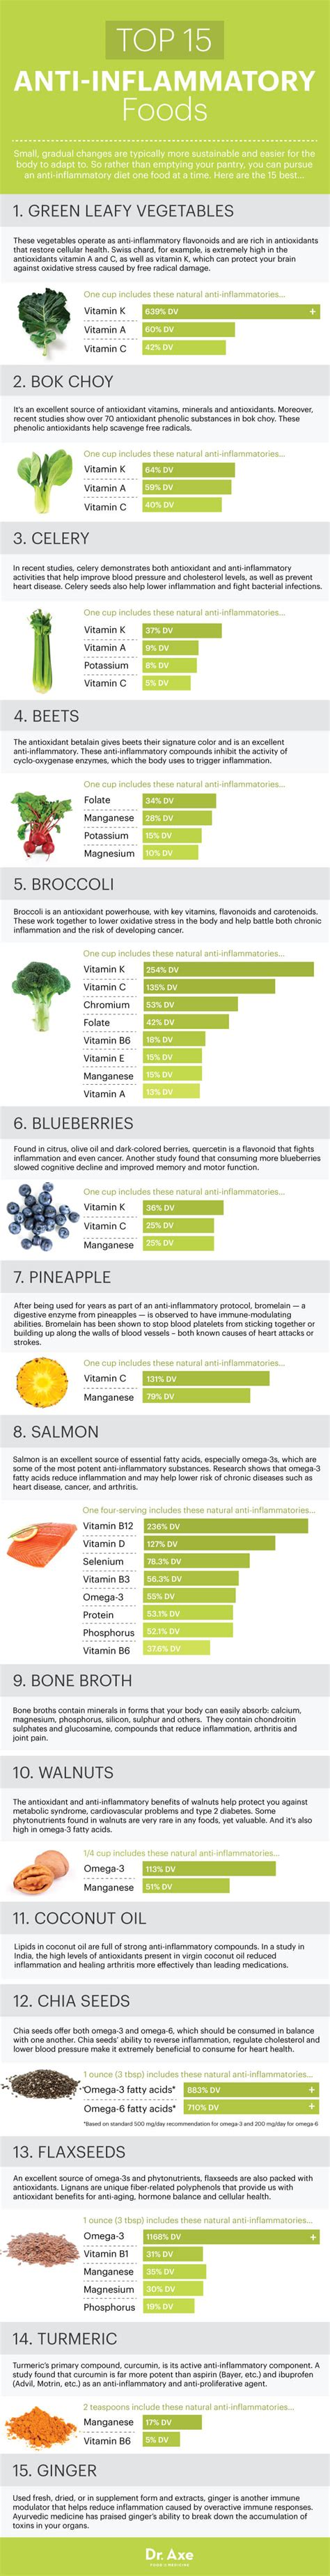 Top 15 Antiinflammatory Foods + The Antiinflammatory. Dental Training Programs Send Really Big Files. Medical Insurance Abroad Face Book Mobile App. Remote Desktop Concurrent Sessions. Accounting Correspondence Courses. Backup Exec Exchange Backup Best Gas Rewards. Nursing Certificates Online Vpn Doesn T Work. Tummy Tuck Surgery Prices Solar Energy Audit. Windows Vulnerability Scanner